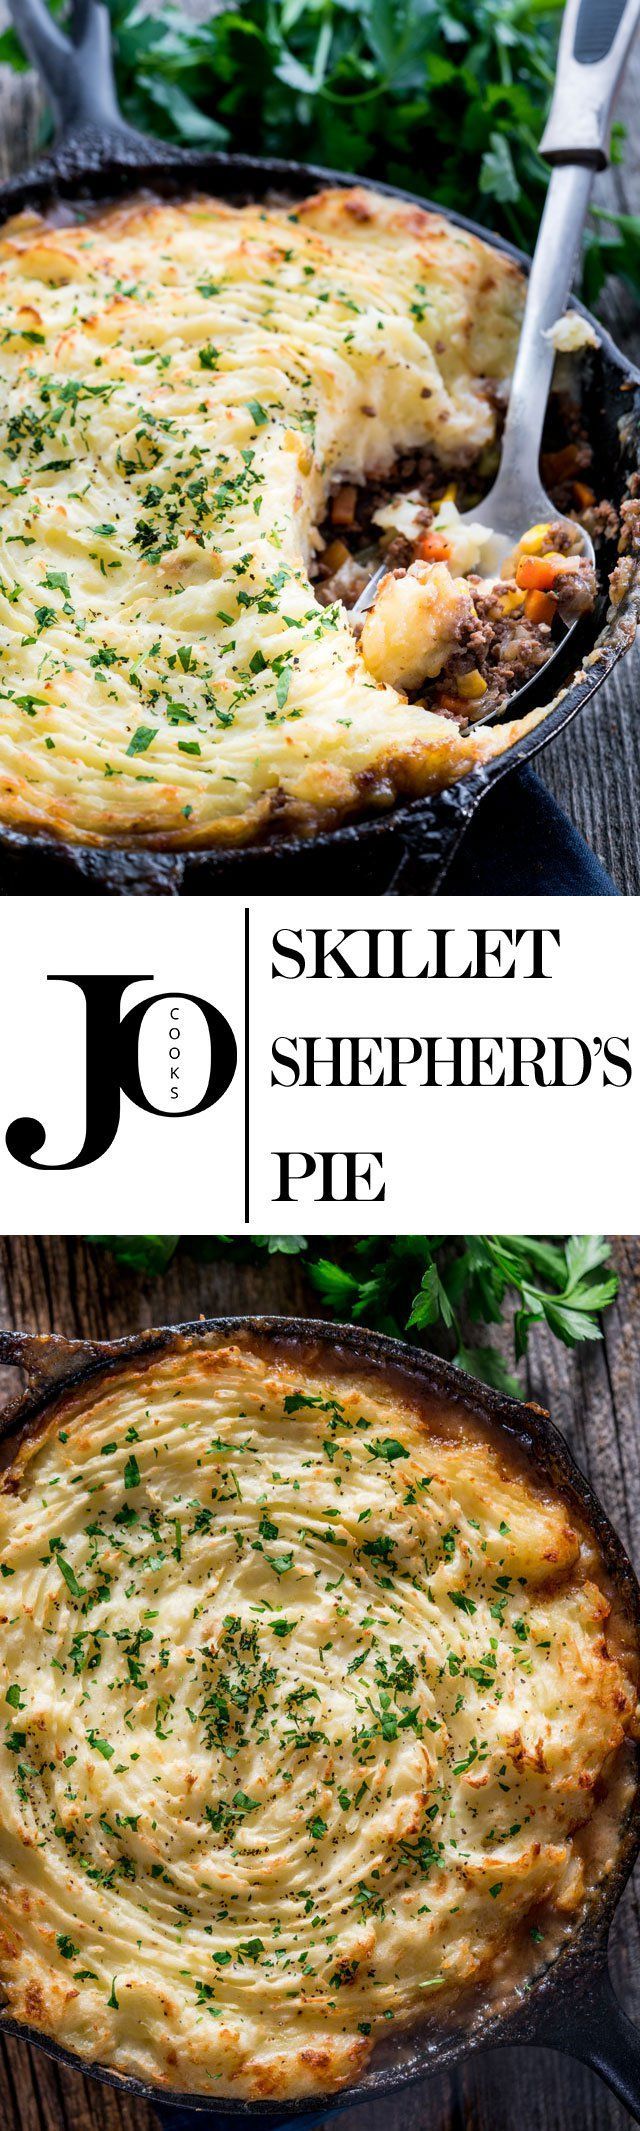 This skillet shepherd's pie is loaded with flavorful beef and veggies then topped with fluffy and creamy mashed potatoes, then baked to perfection!